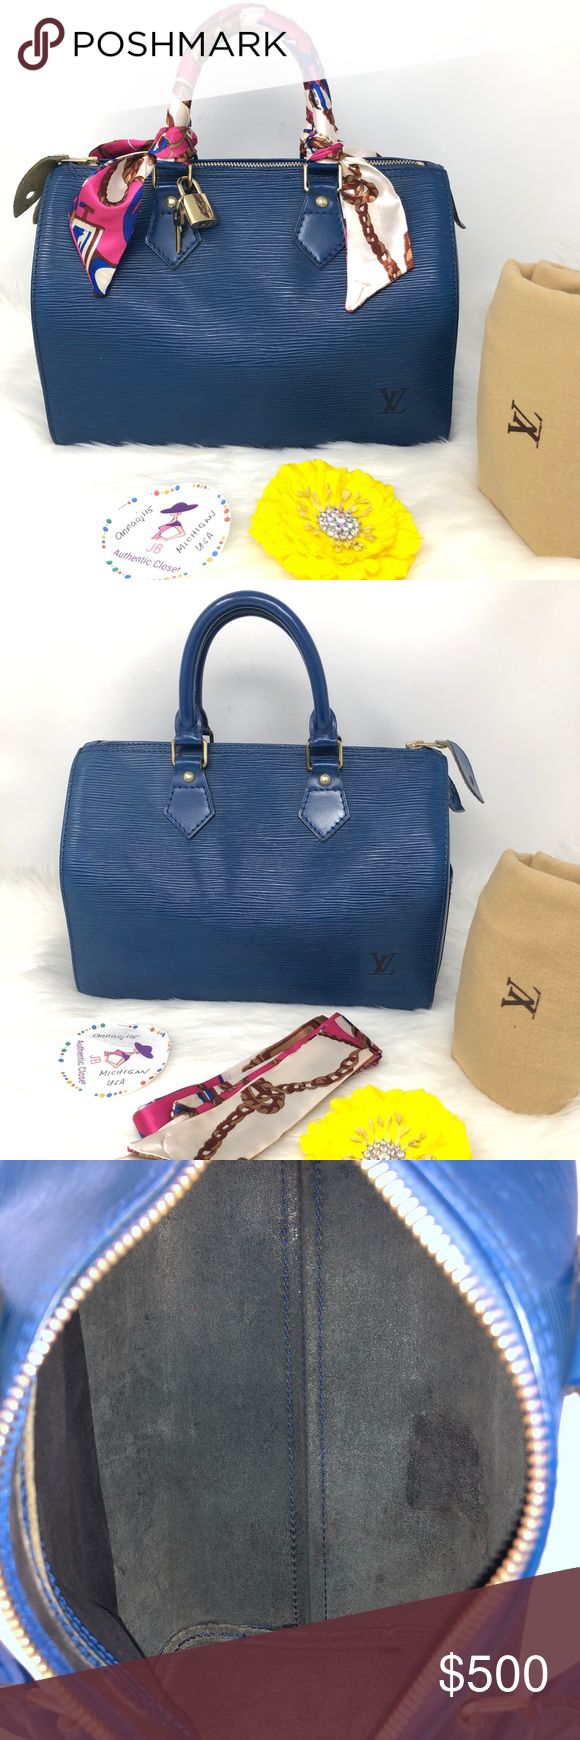 c106d4c35e7e Louis Vuitton Epi Leather Blue Speedy 25 Bag 💥Price is Firm💥 100%  Authentic Preowned Used Made in France Date Code VI0962 With Authentic  Lockset   Dust ...